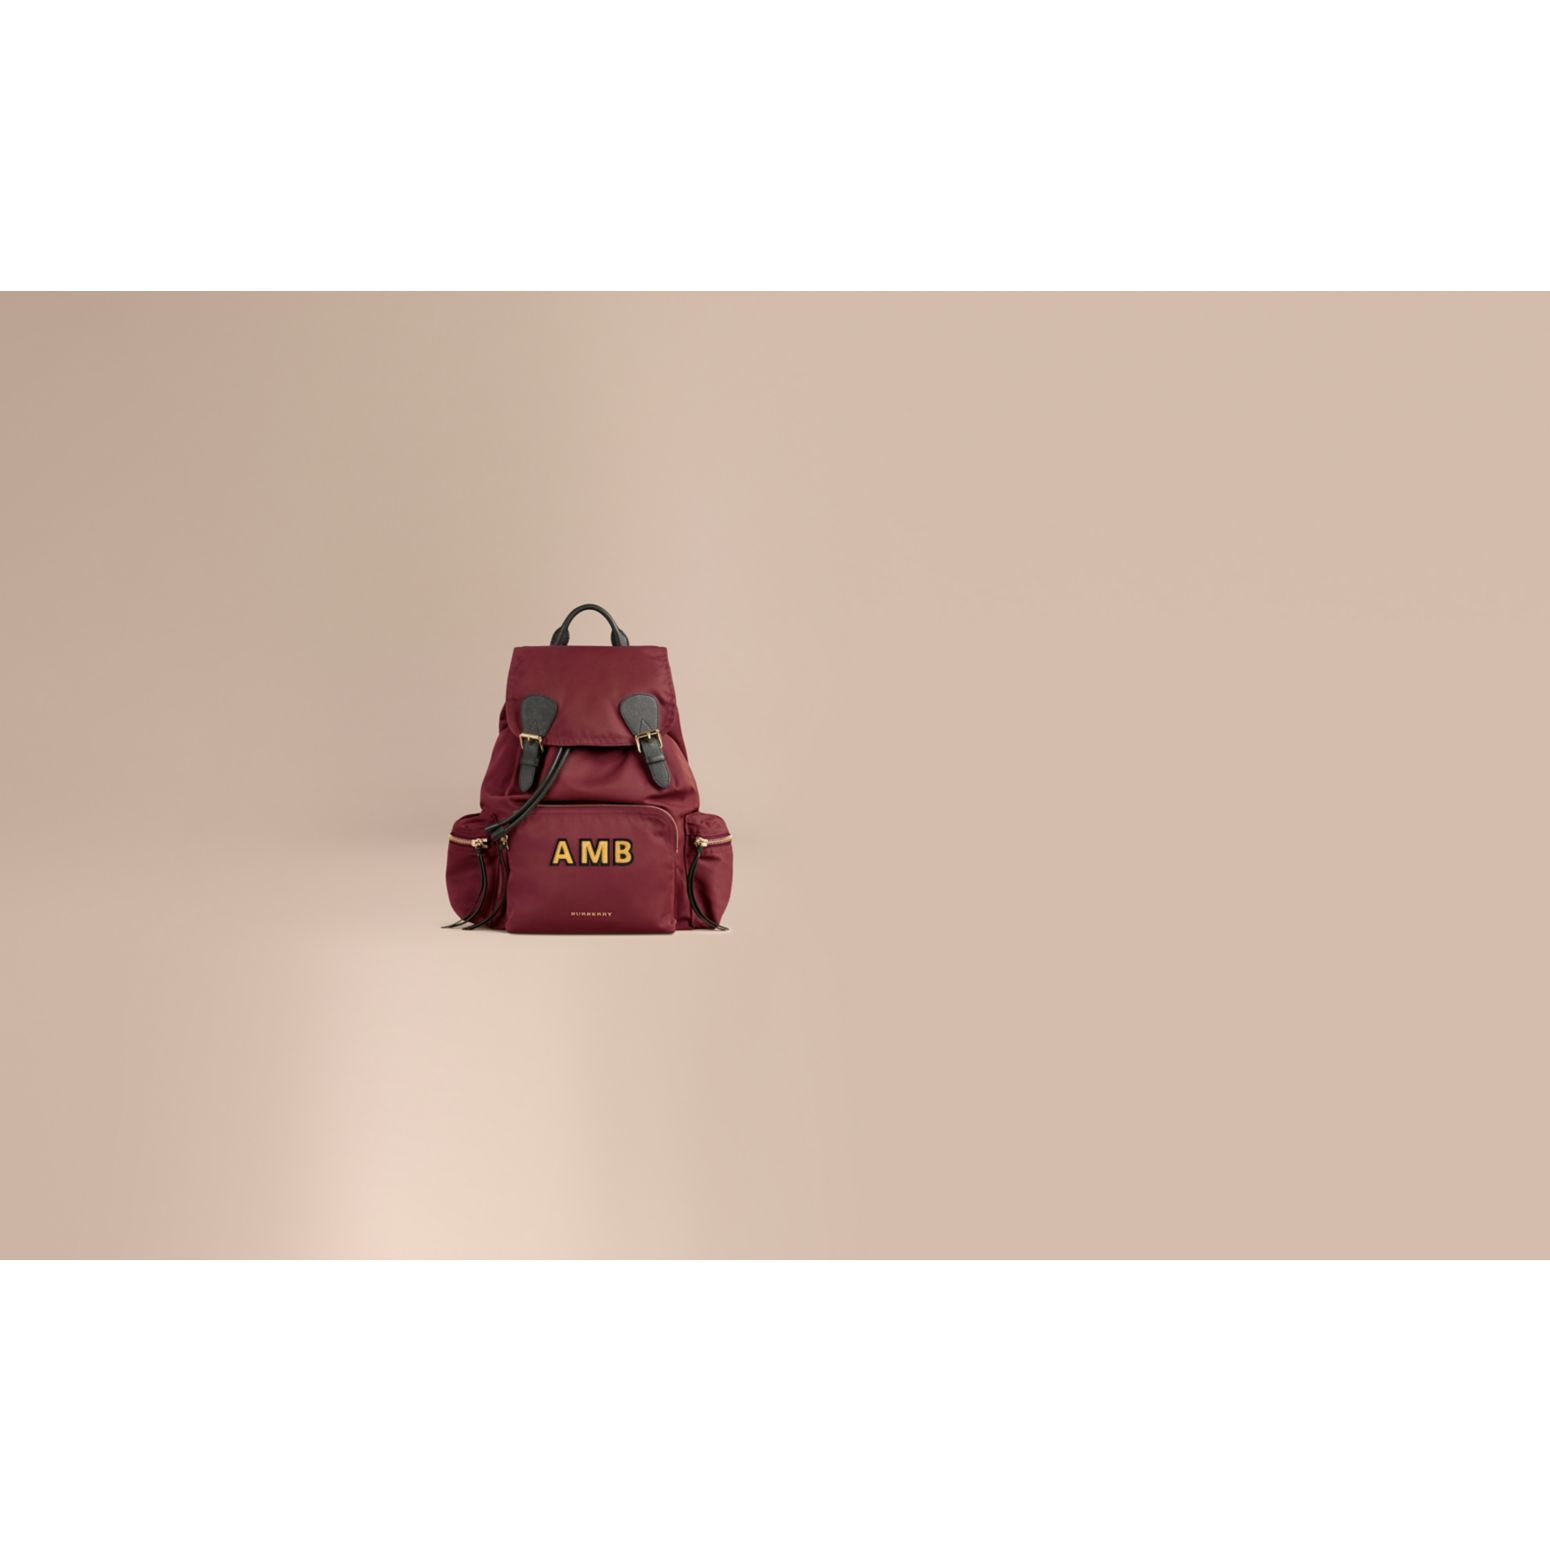 Grand sac The Rucksack en nylon technique et cuir (Rouge Bourgogne) - Femme | Burberry Canada - photo de la galerie 1